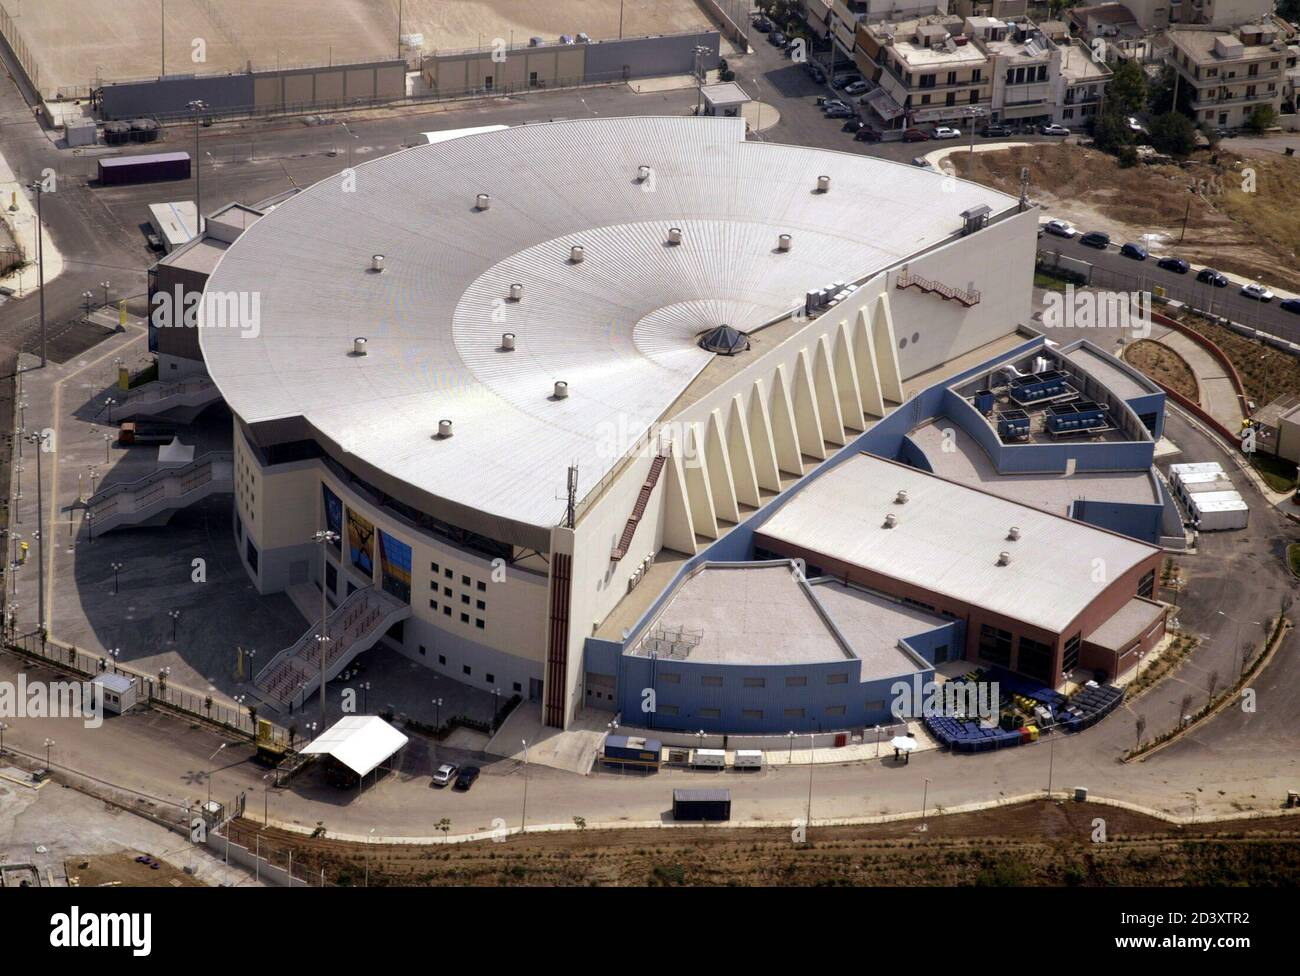 An aerial view of Nikaia Olympic Weightlifting hall at Athens' Nikaia  suburb July 24, 2004. The 5,000 seat stadium will host the Weightlifting  event duirng the Olympics and is located some 29